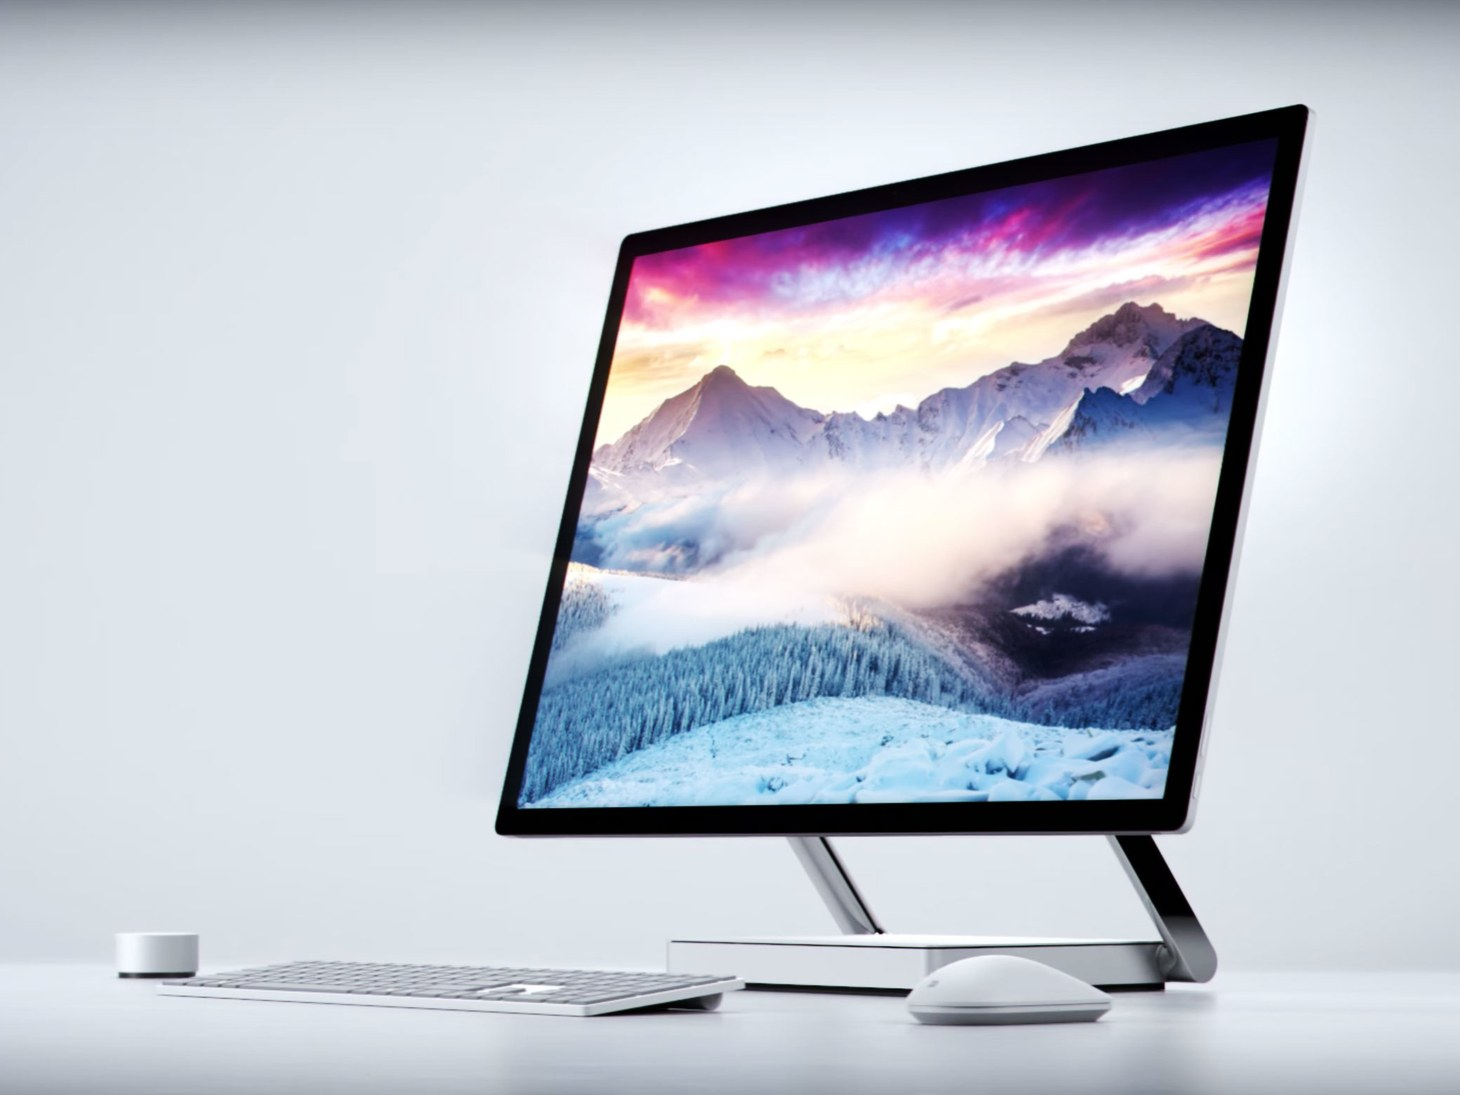 microsoft-surface-studio-all-in-one-pc